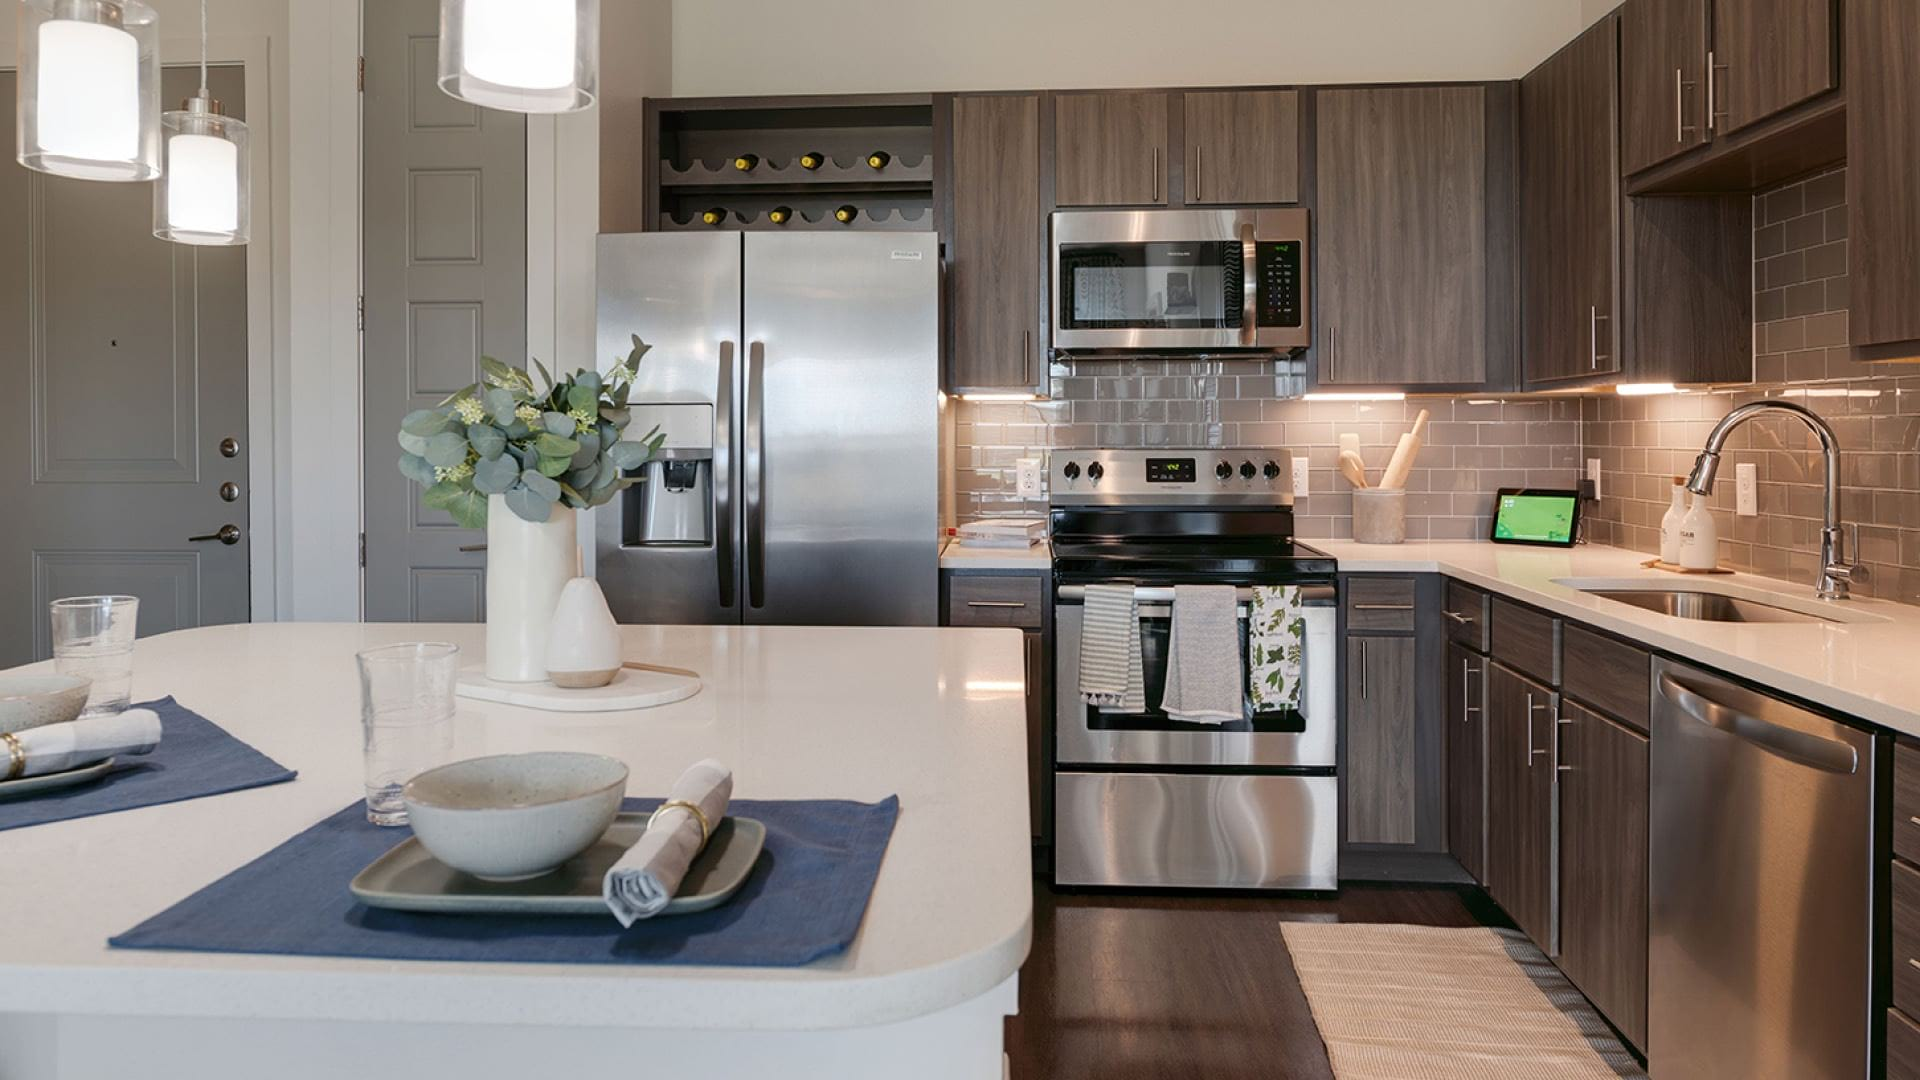 kitchen with pendant lighting over island and under cabinet lights to brighten countertops